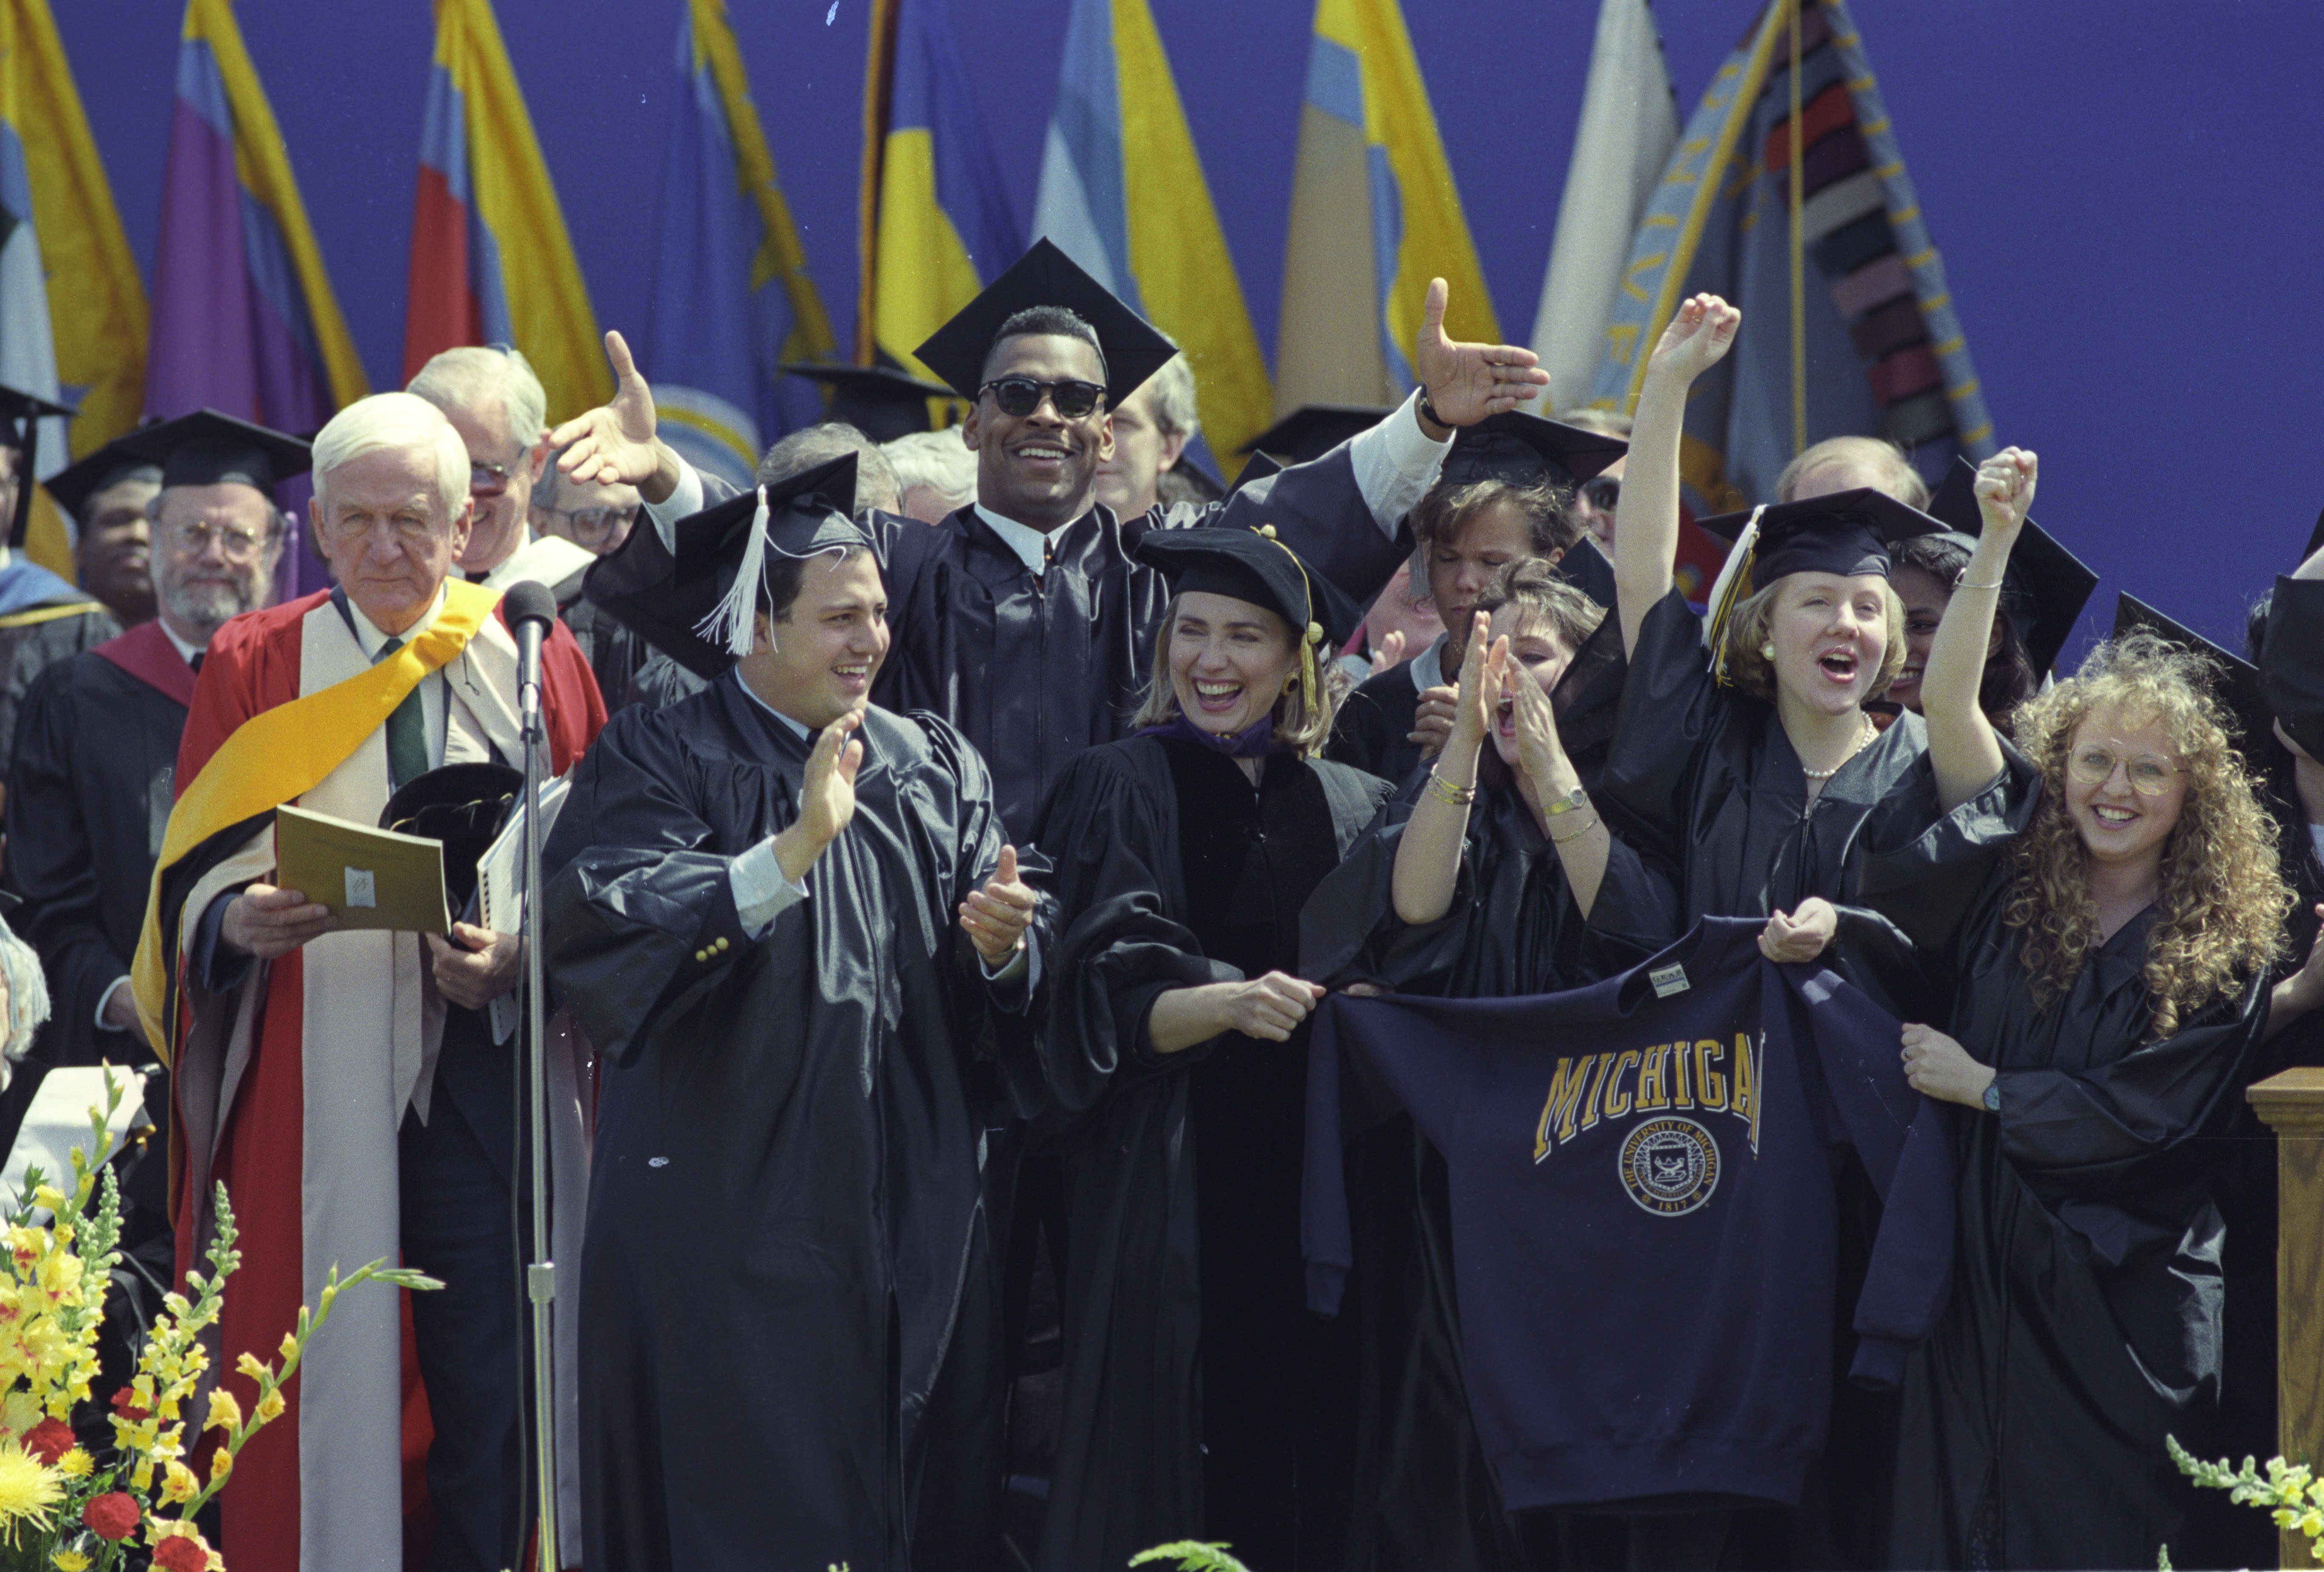 First Lady Hillary Clinton at the University of Michigan's Commencement, May 1, 1993 image